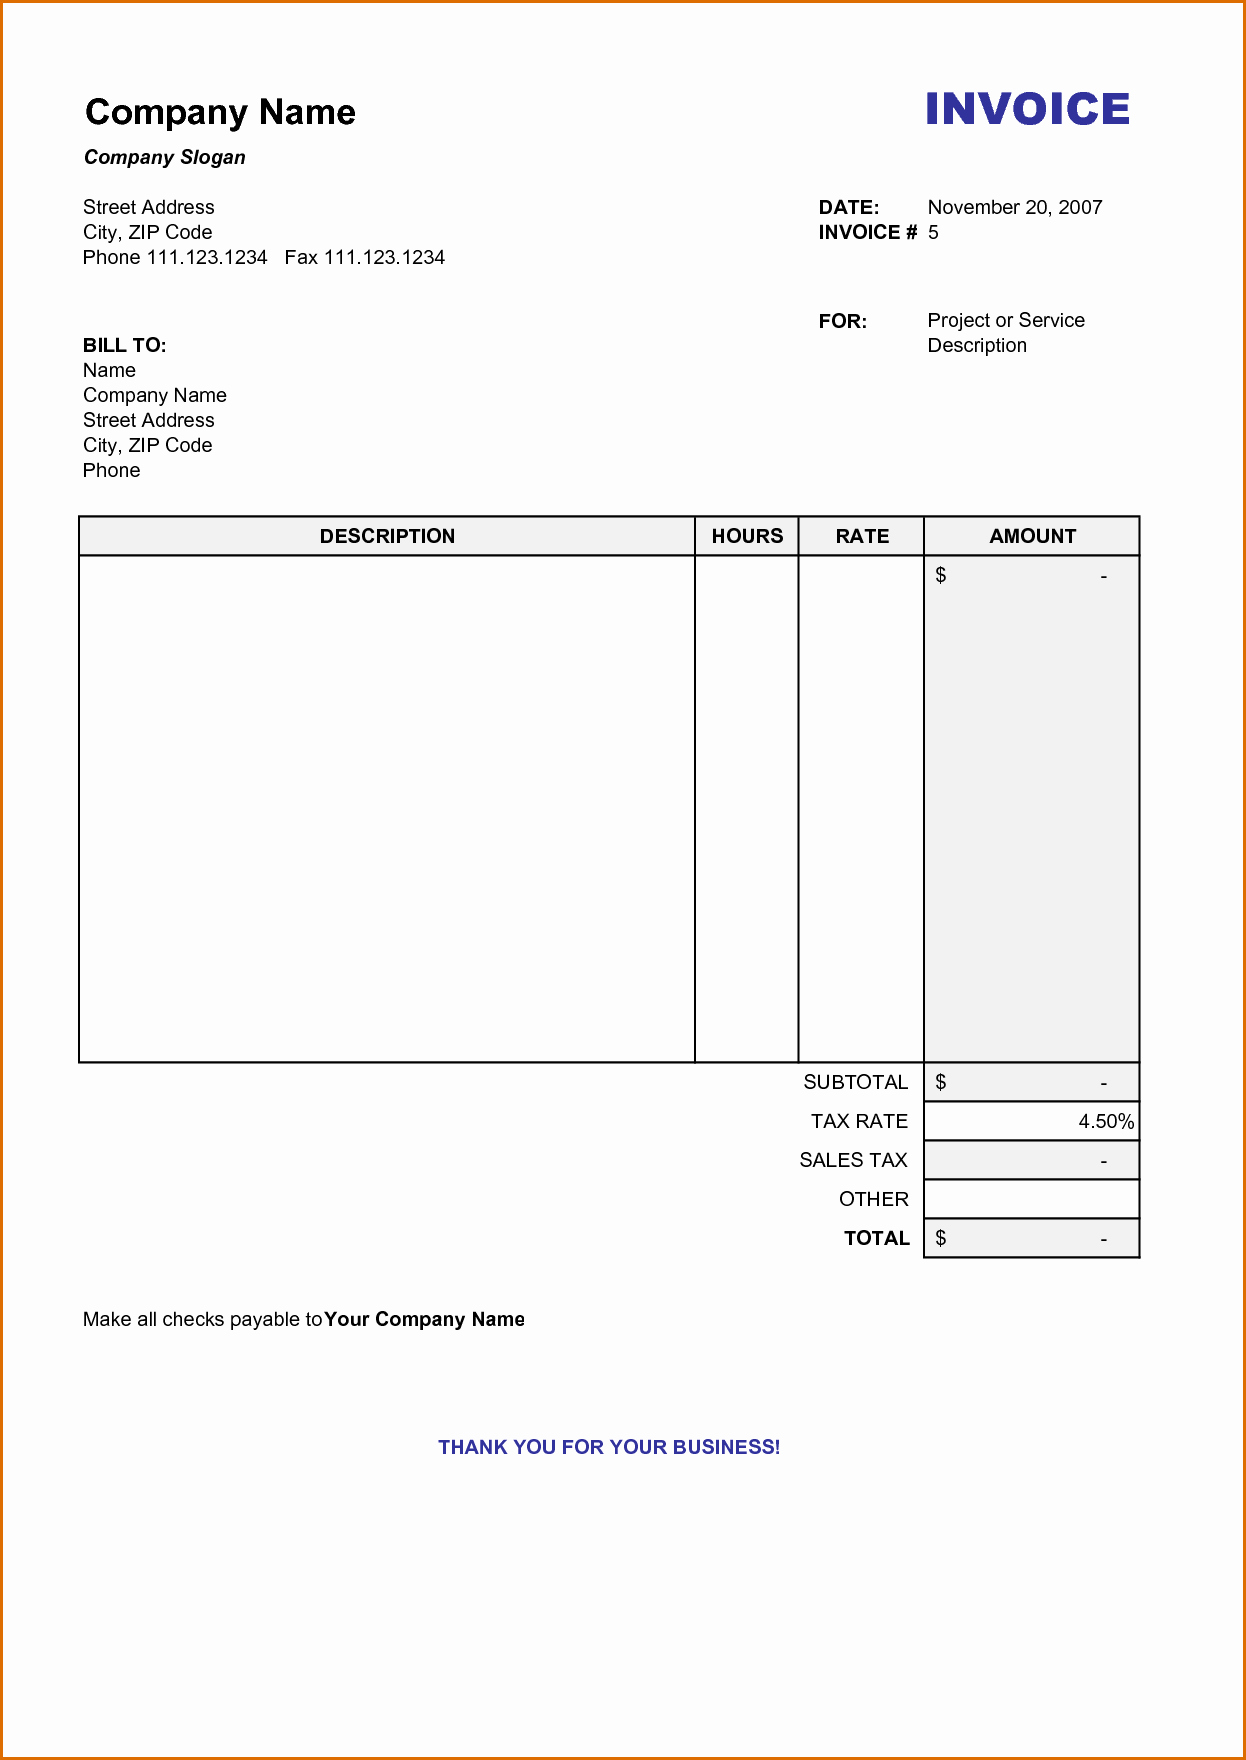 Downloadable Invoice Template for Mac Luxury Blank Invoice Template Printable Yeni Mescale Co Resume